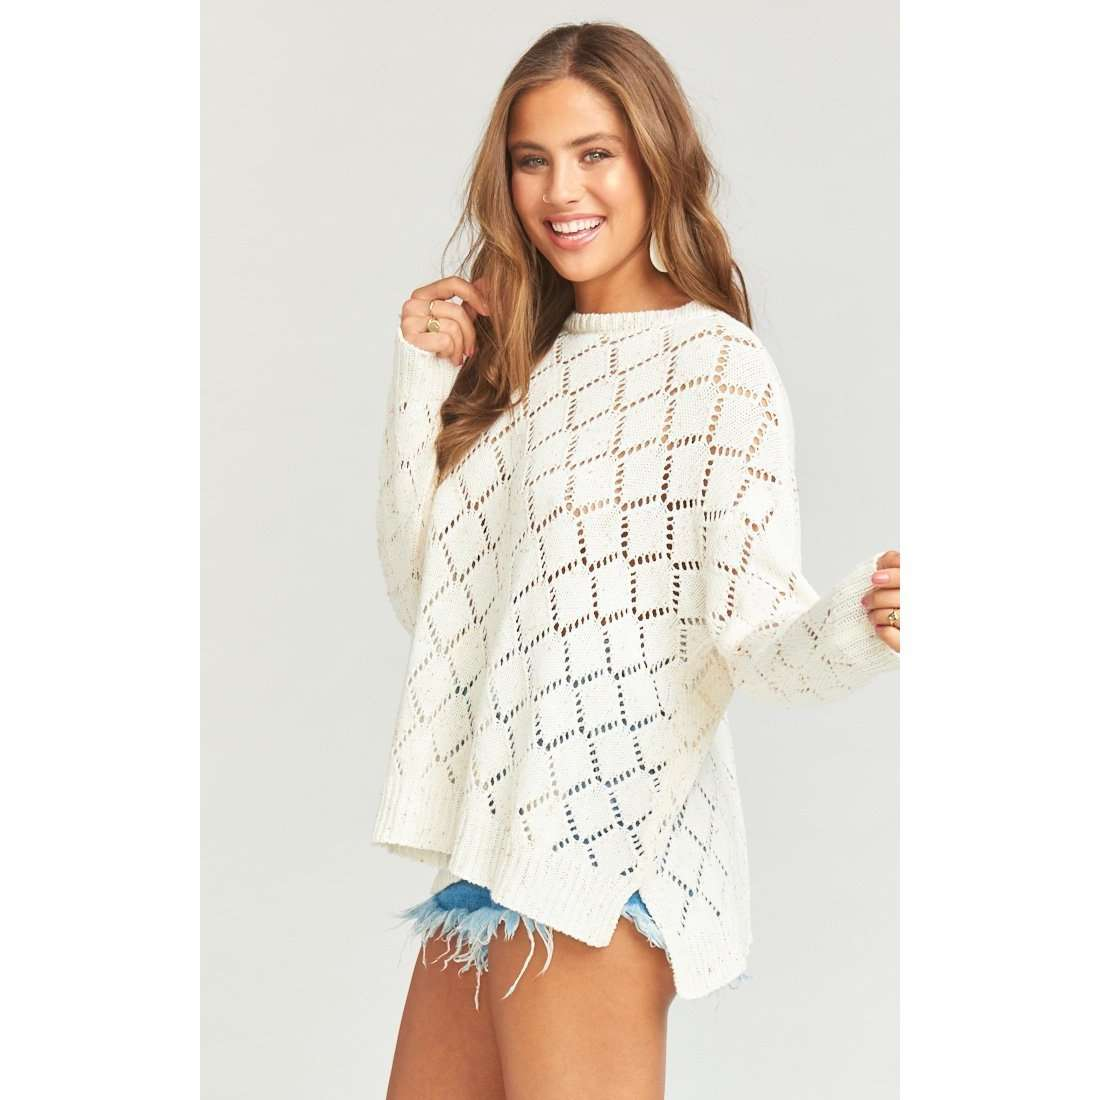 8.28 Boutique:Show Me Your Mumu,Show Me Your Mumu Hattie Summer Confetti Knit Sweater,Tops